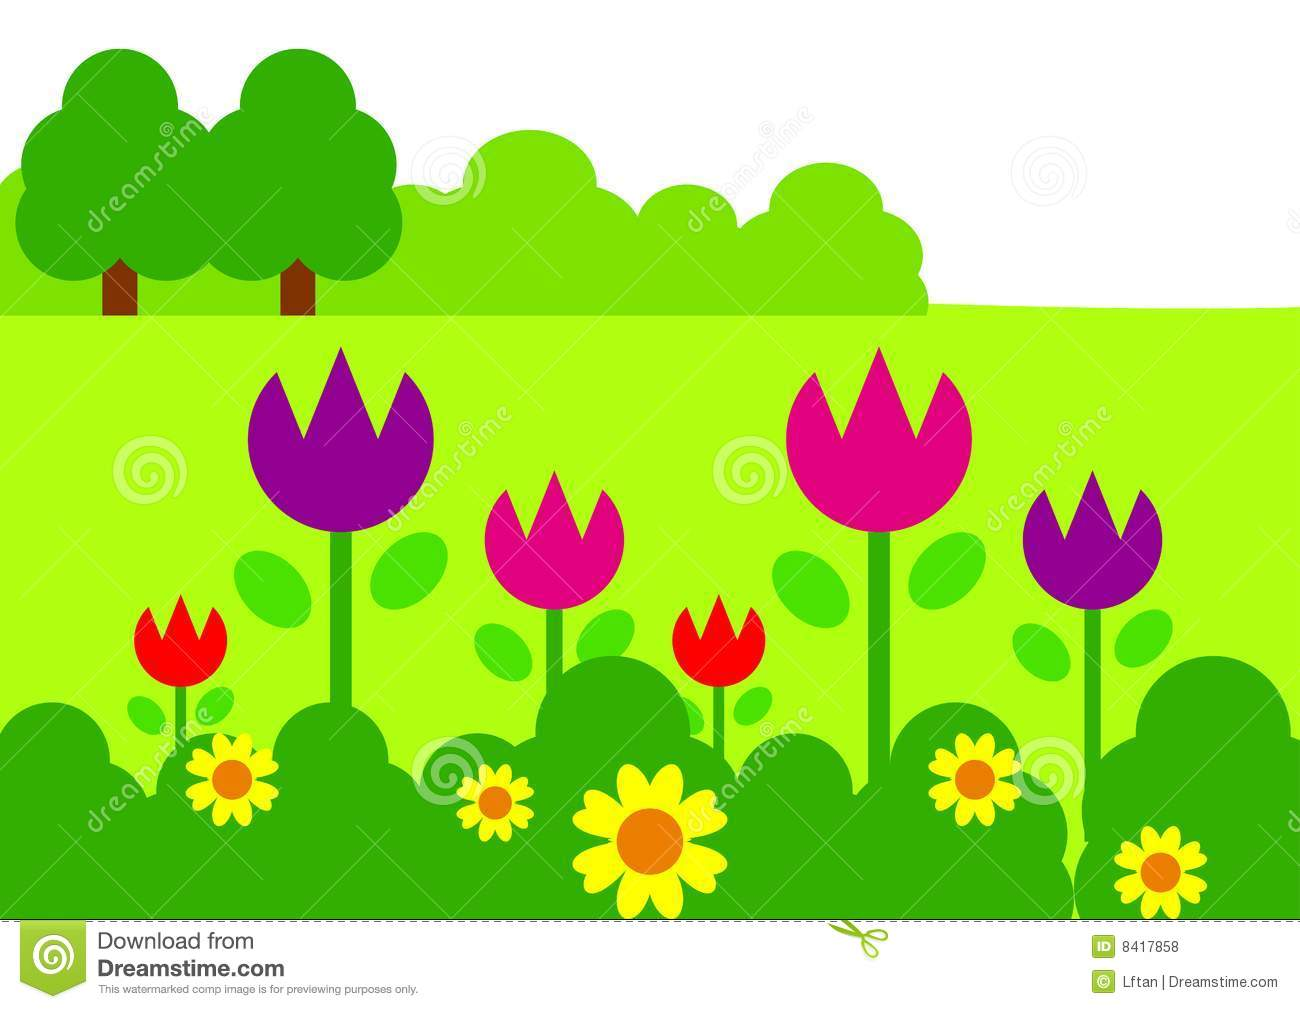 clipart garden images - photo #27